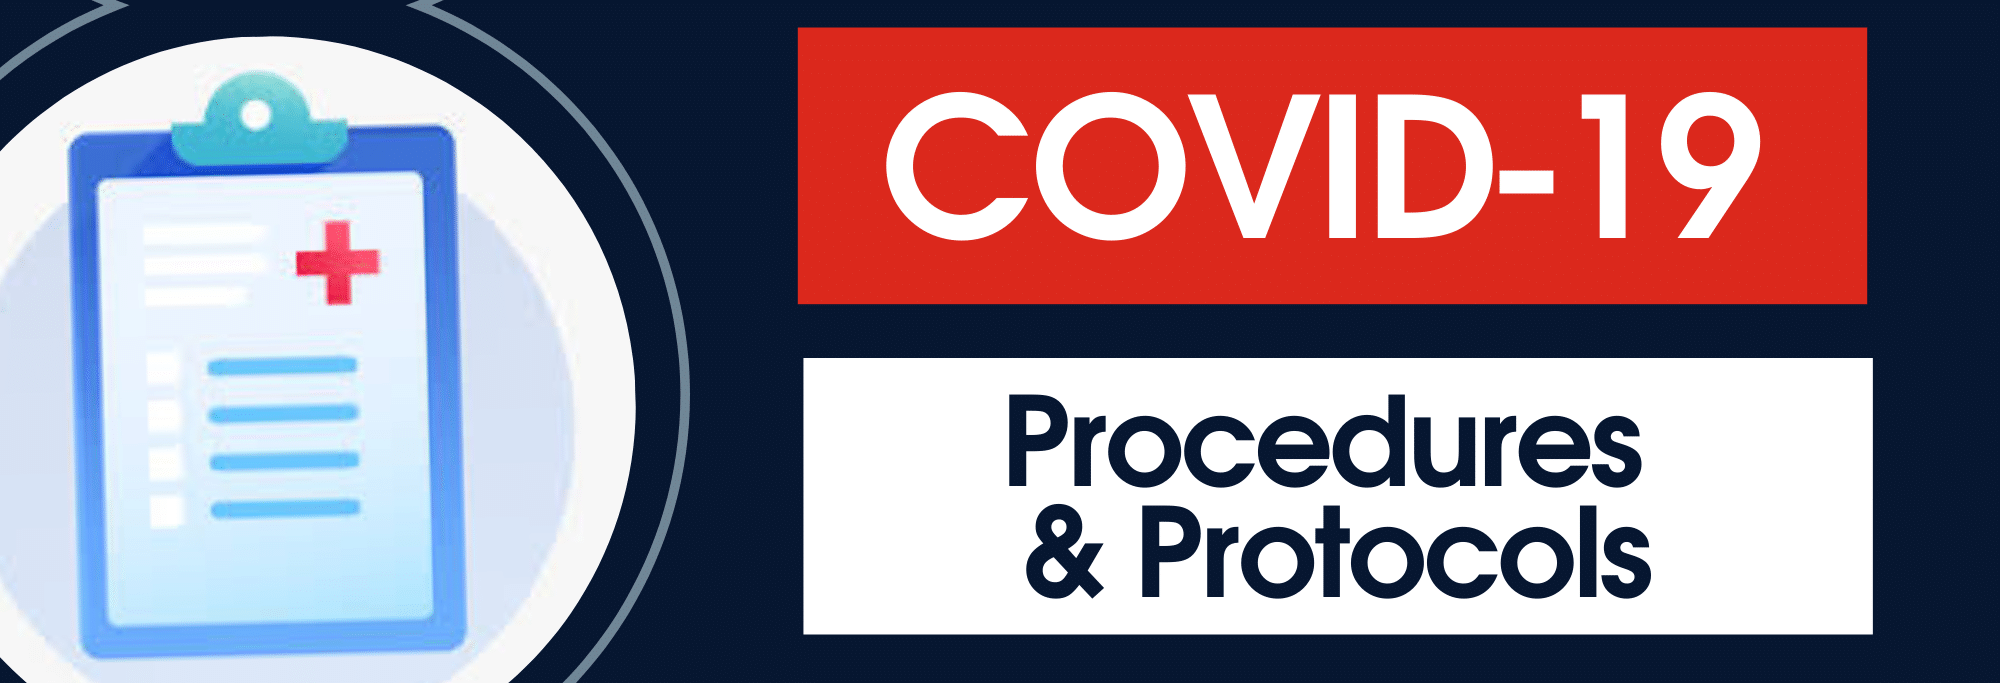 Christian Academy School System | COVID-19 | Procedures and Protocols